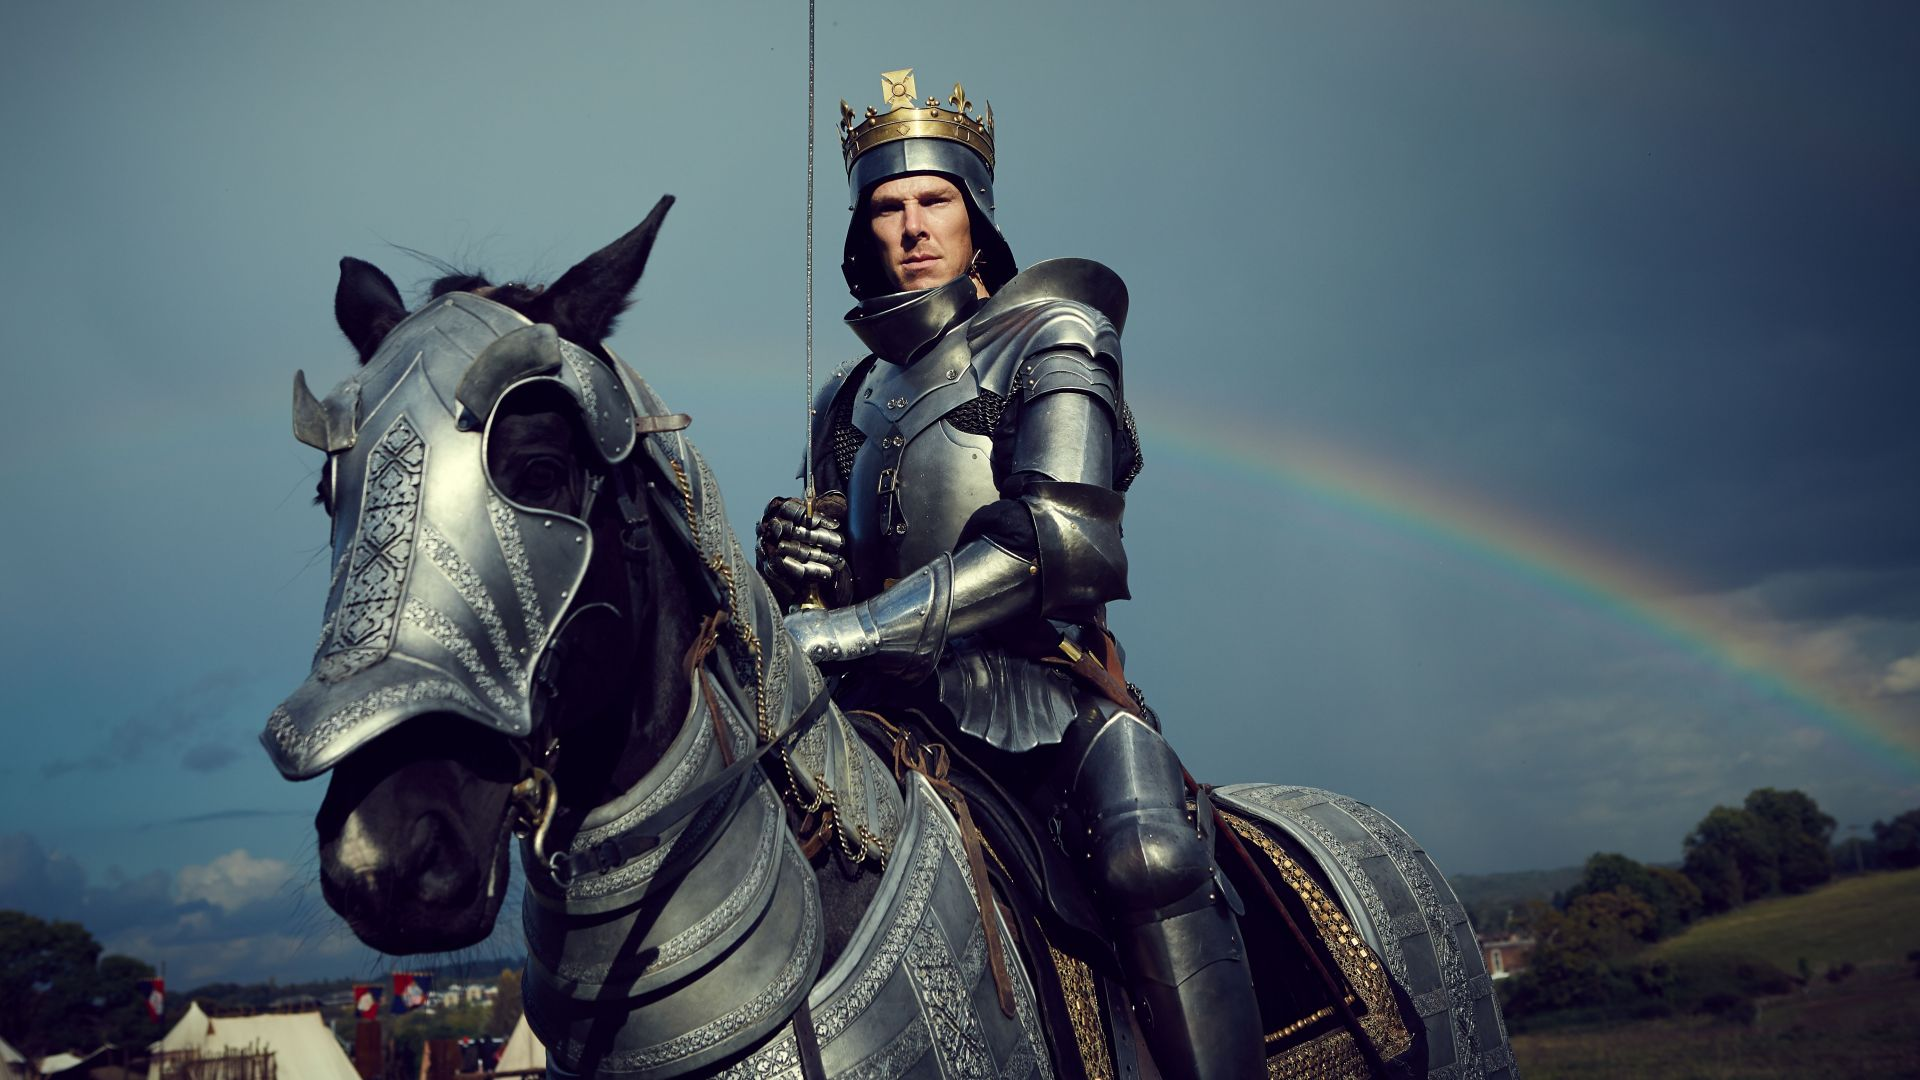 Benedict Cumberbatch plays Richard III in The Hollow Crown: The Wars of the Roses RICHARD III. Photographer: Robert Viglasky © 2015 Carnival Film & Television Ltd